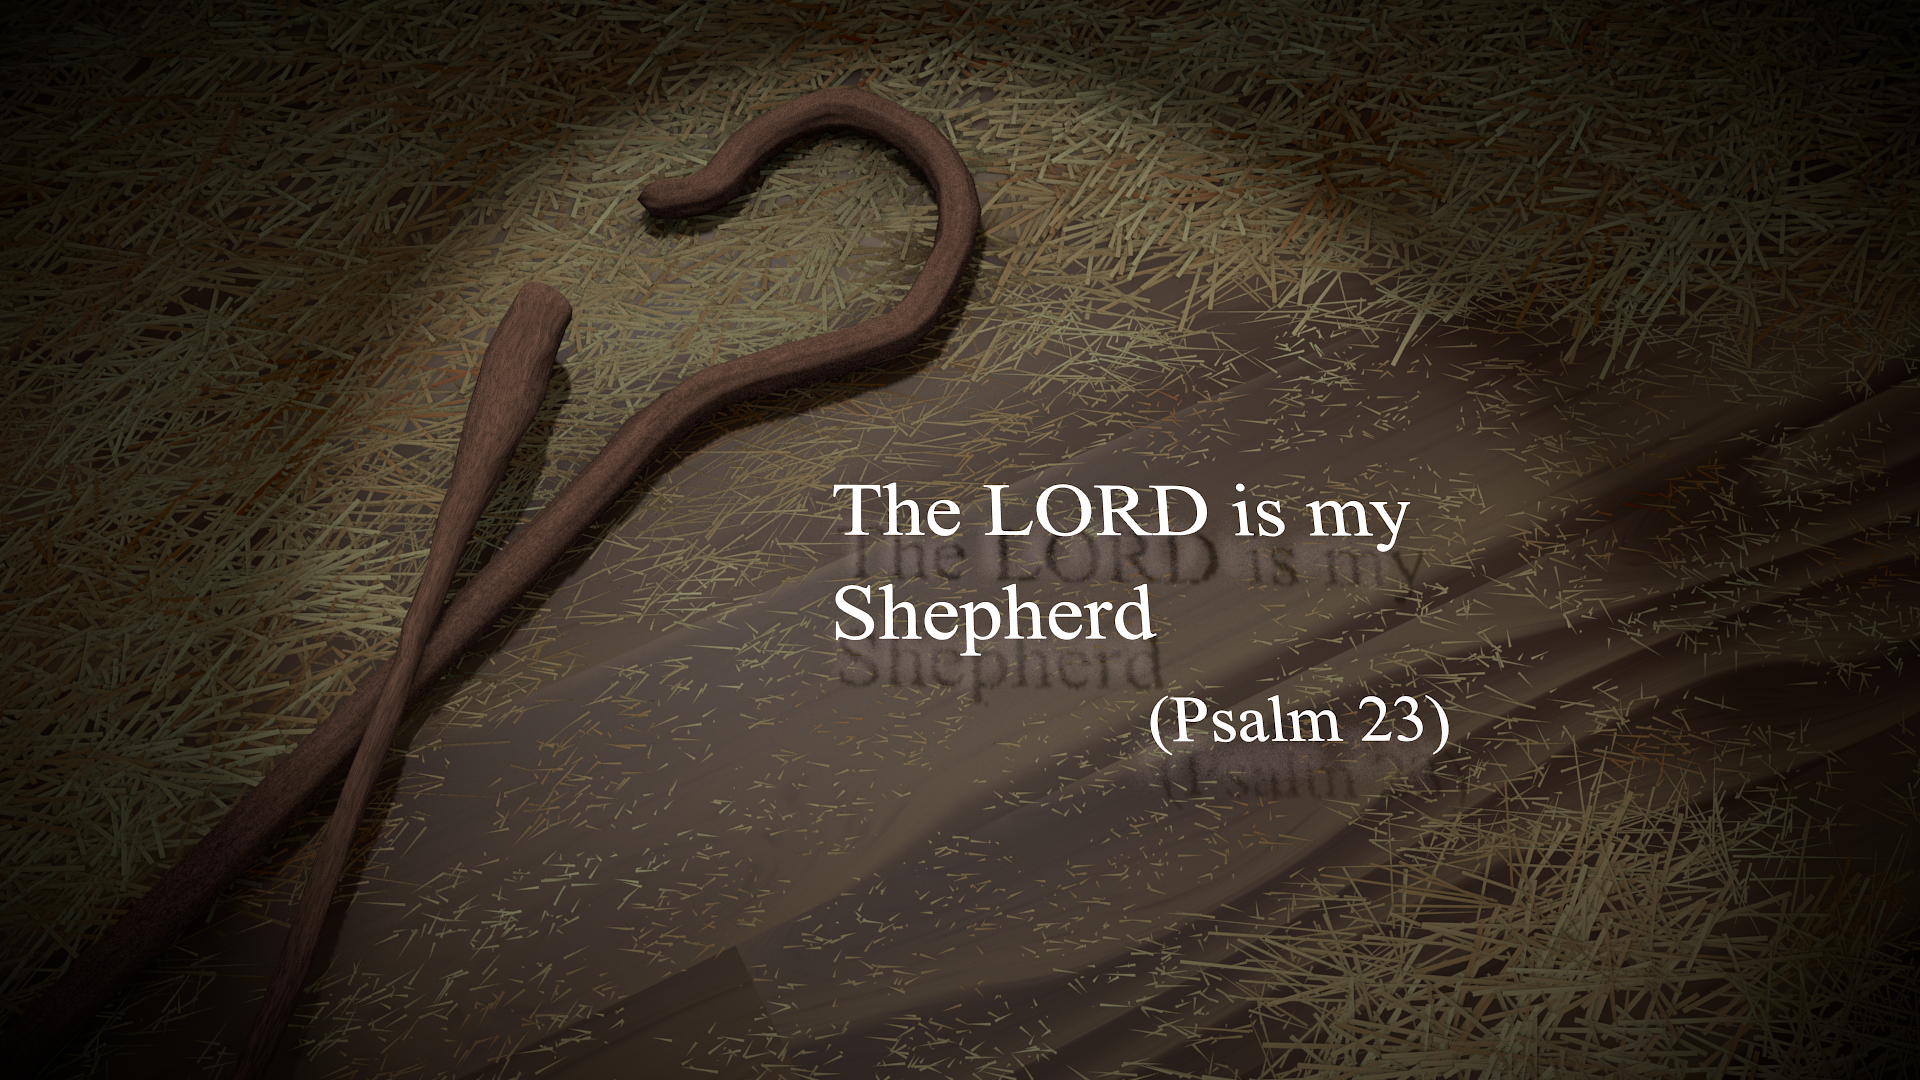 Making The Lord Personal By Adknowledging Him As Your Shepherd